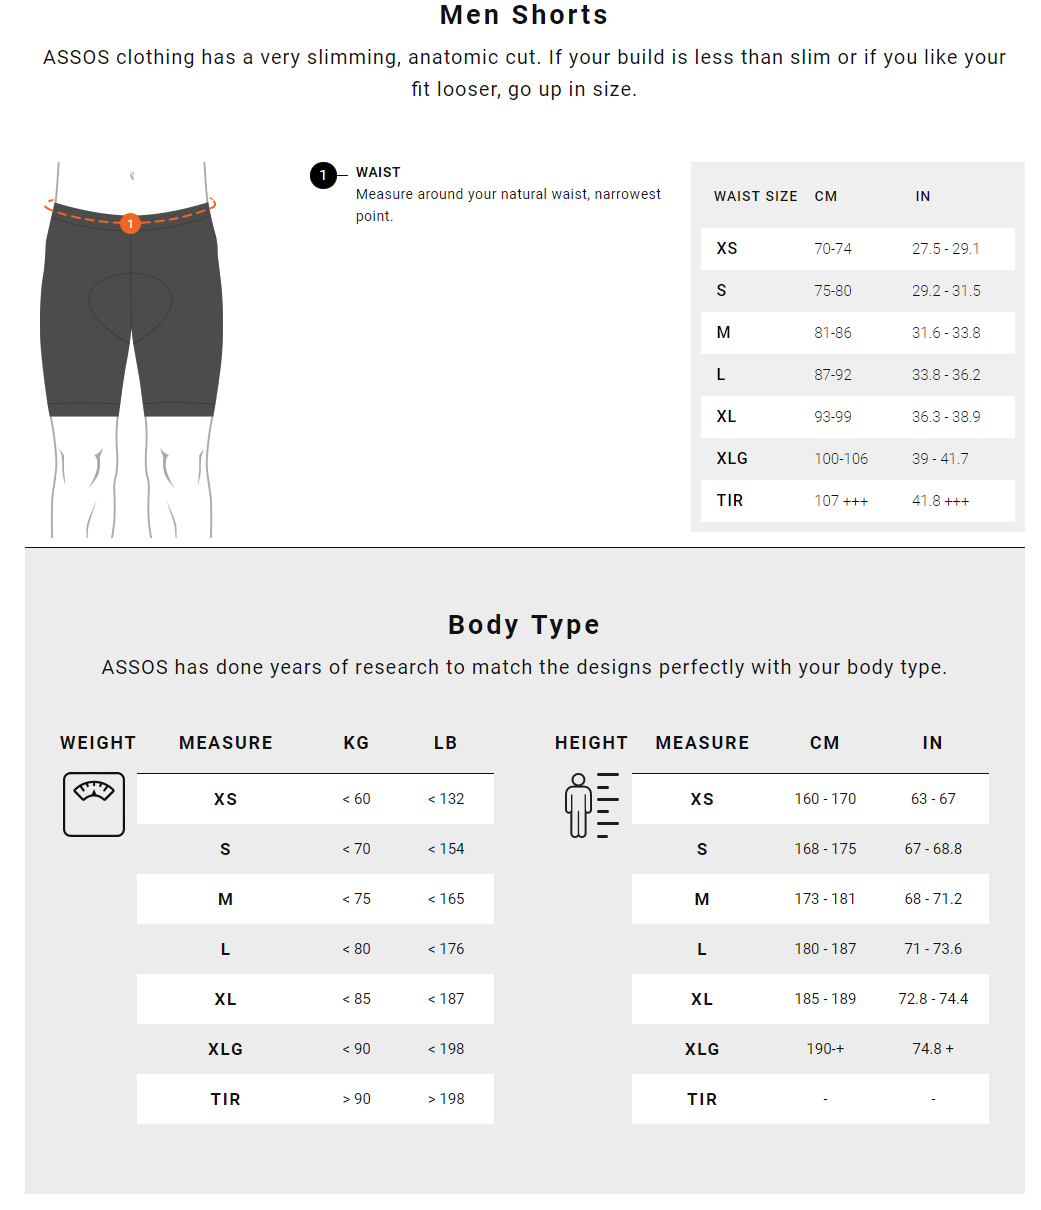 Assos Men's Shorts Size Guide